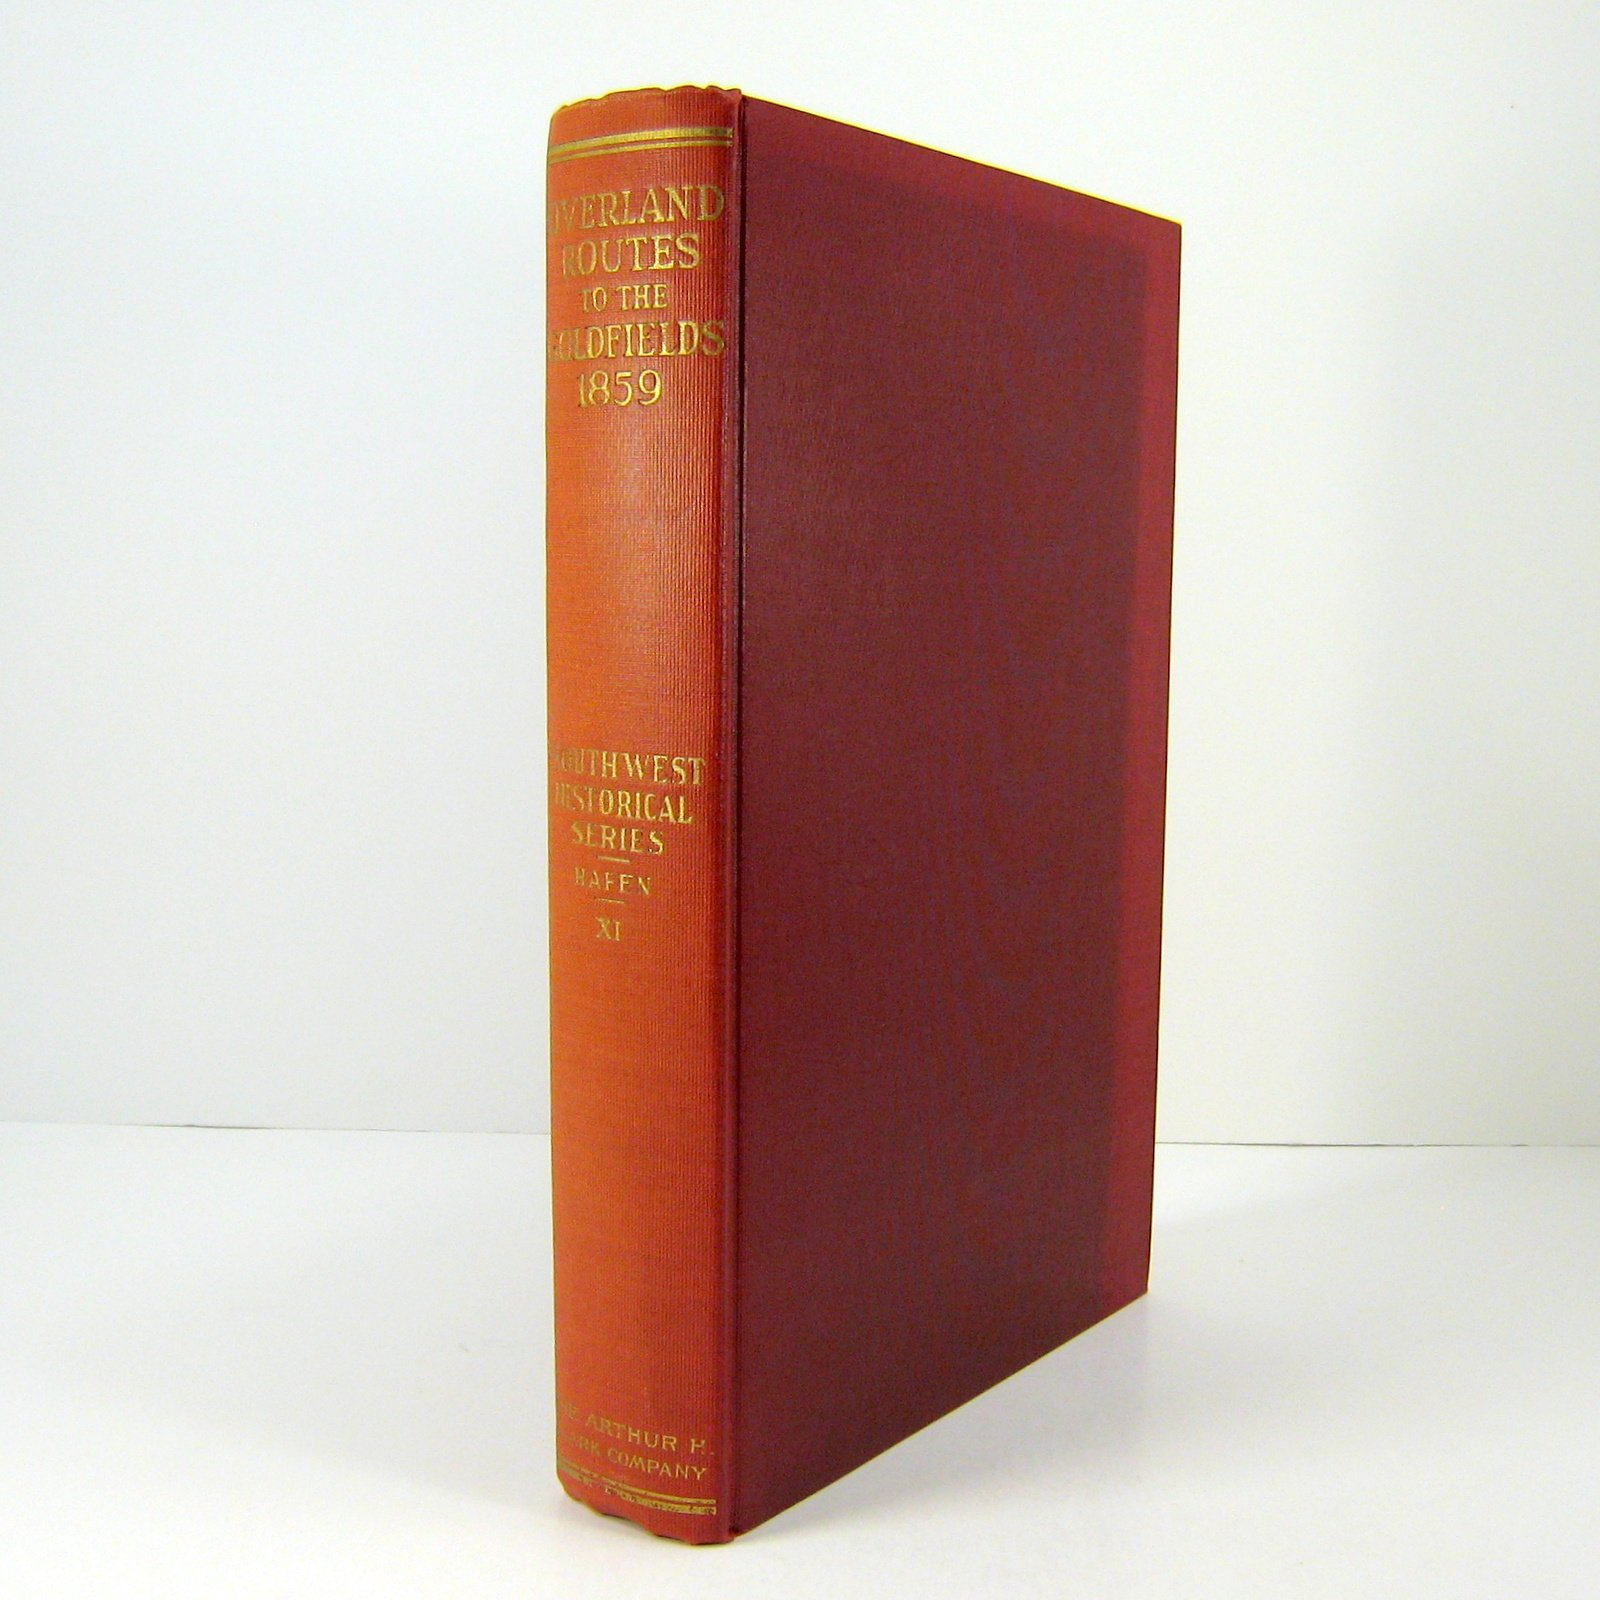 Overland Routes to the Goldfields, 1859, From Contemporary Diaries [The  Southwest Historical Series, XI]: LeRoy R. (ed). Hafen: Amazon.com: Books